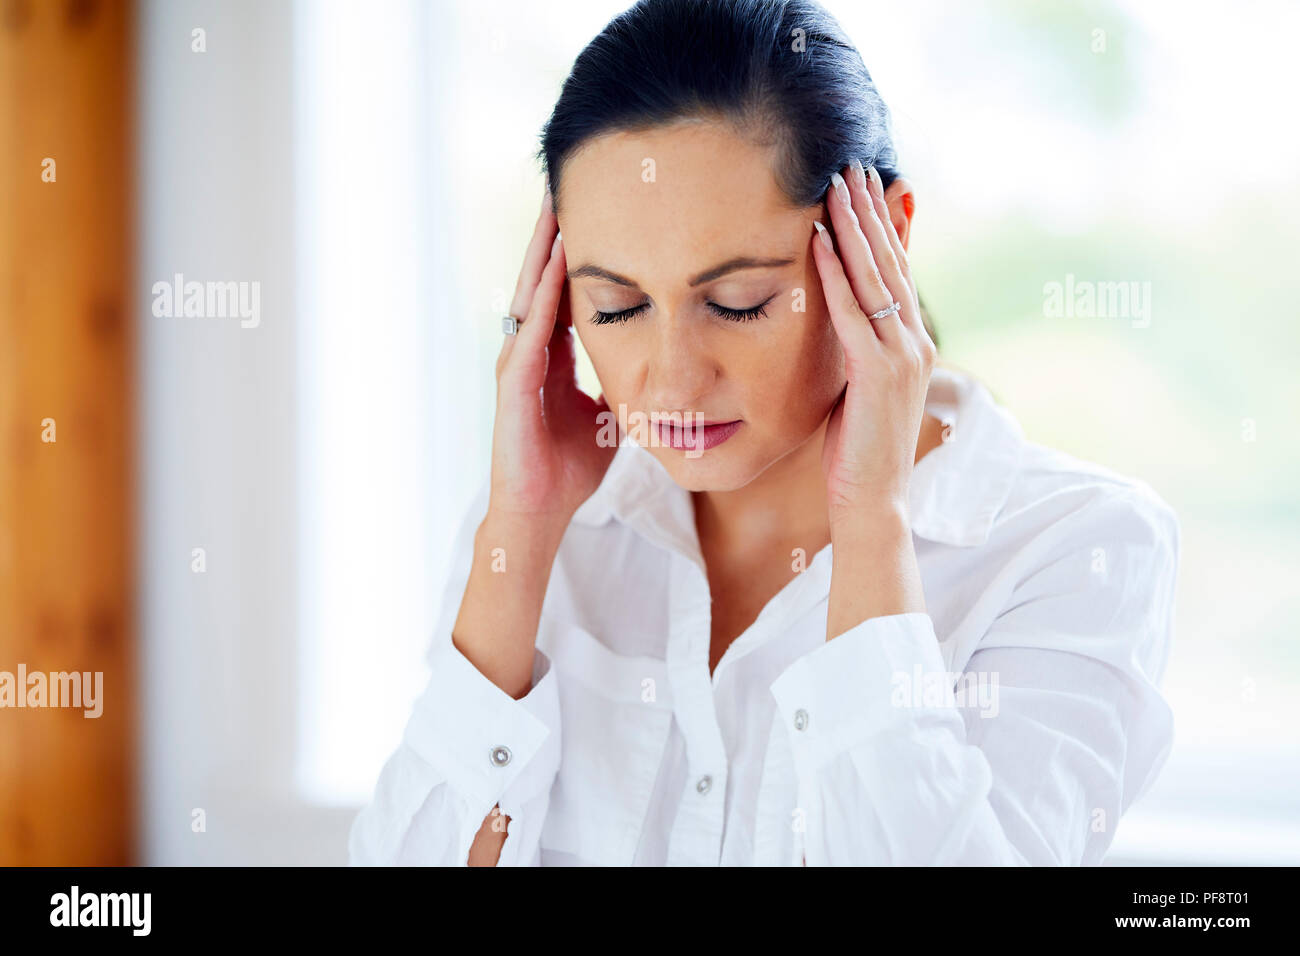 Woman rubbing her temples - Stock Image